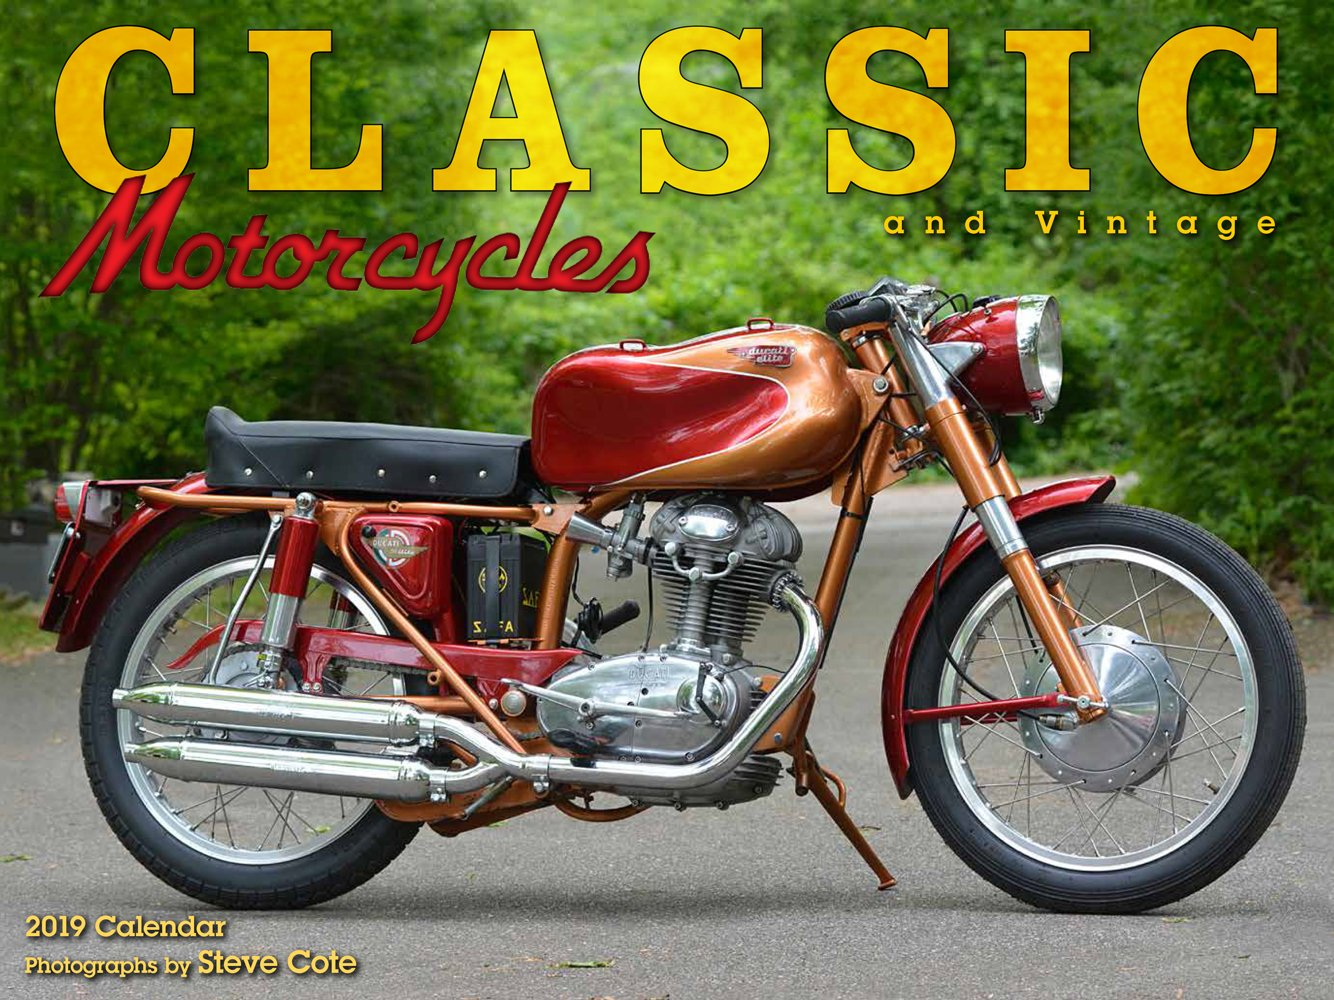 Classic and Vintage Motorcycles 2019 Calendar Calendar – Wall Calendar, August 15, 2018